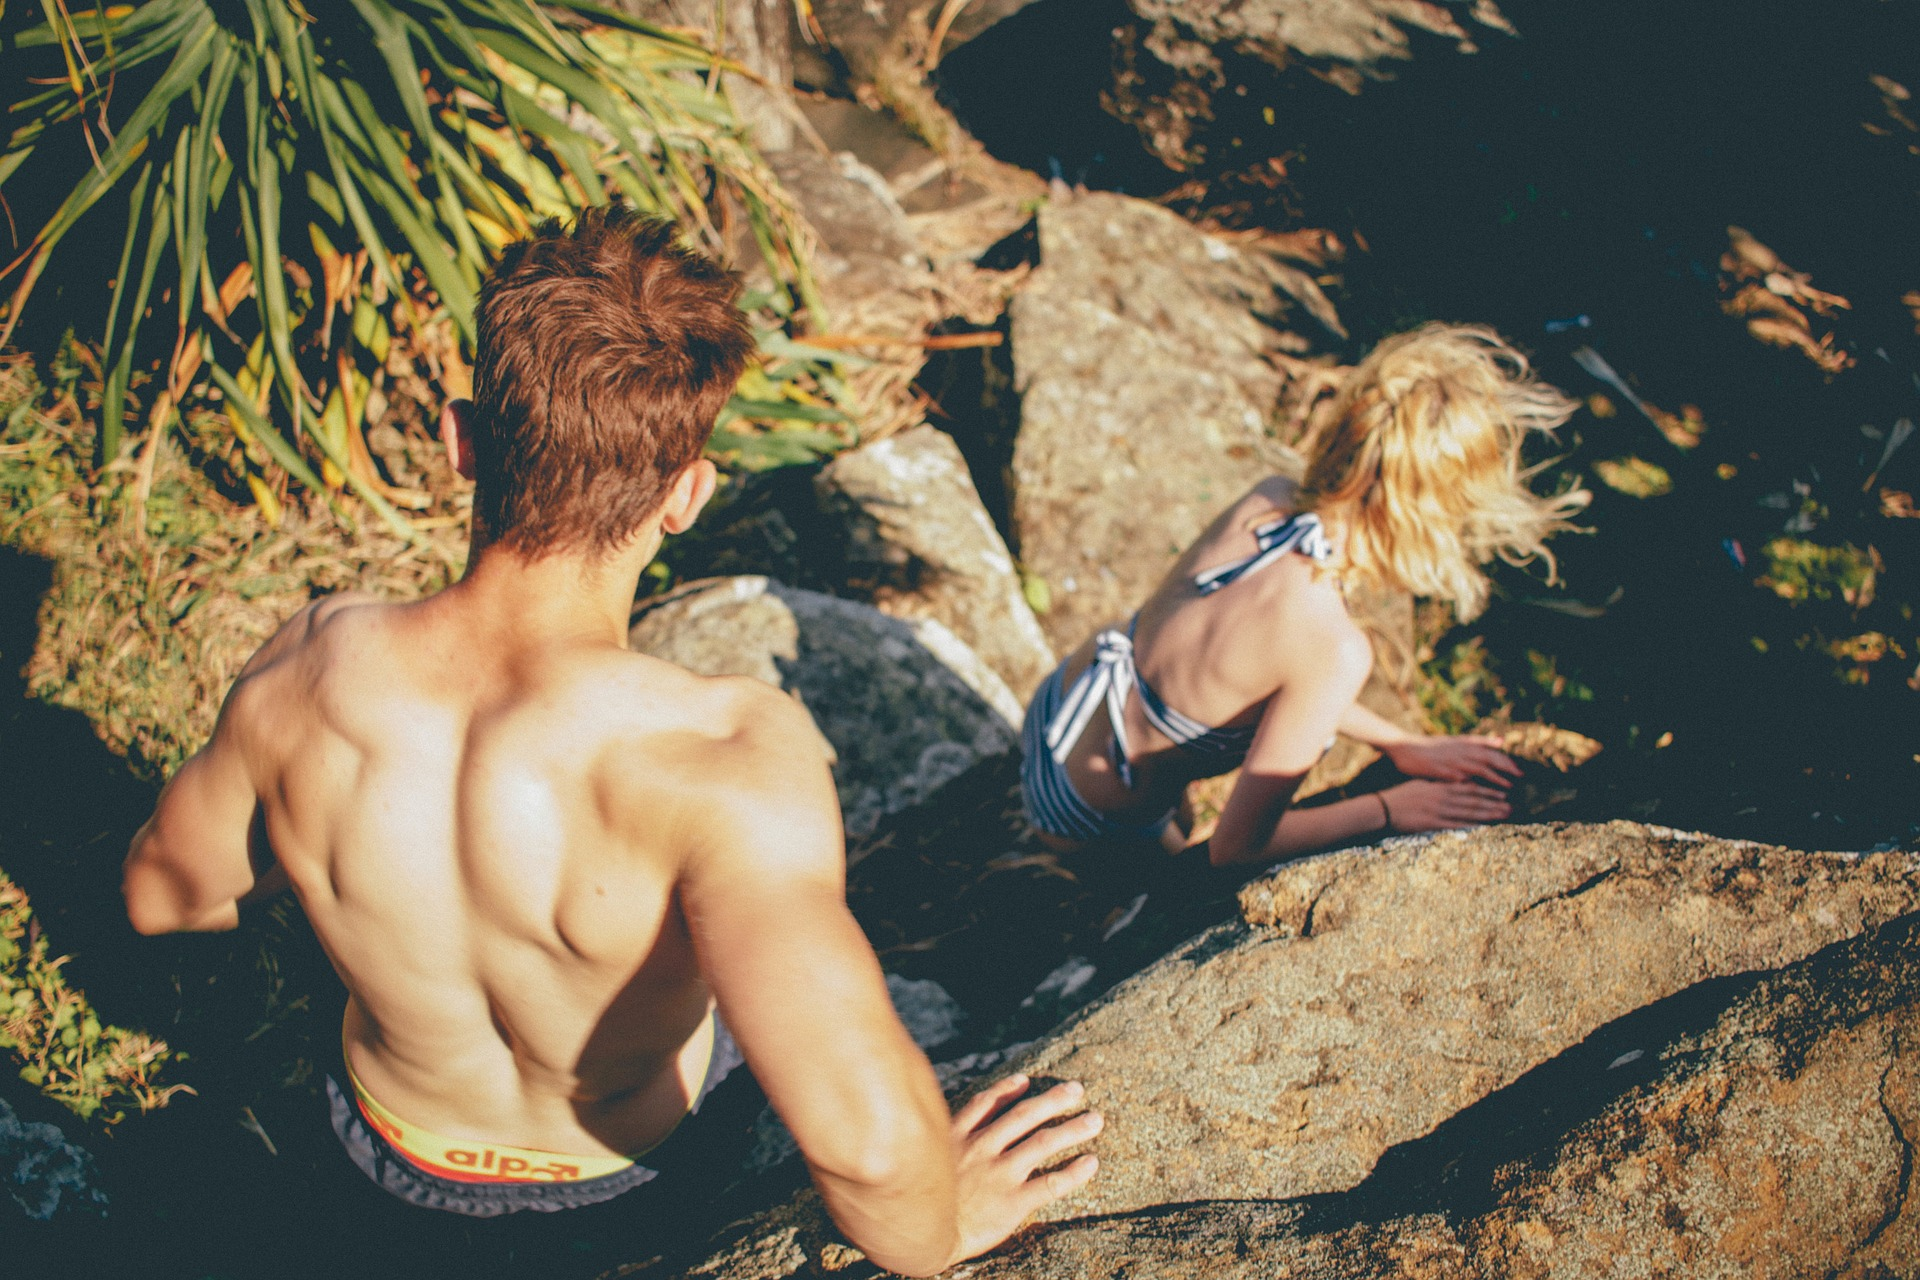 Young man climbs down rocks with attractive young woman